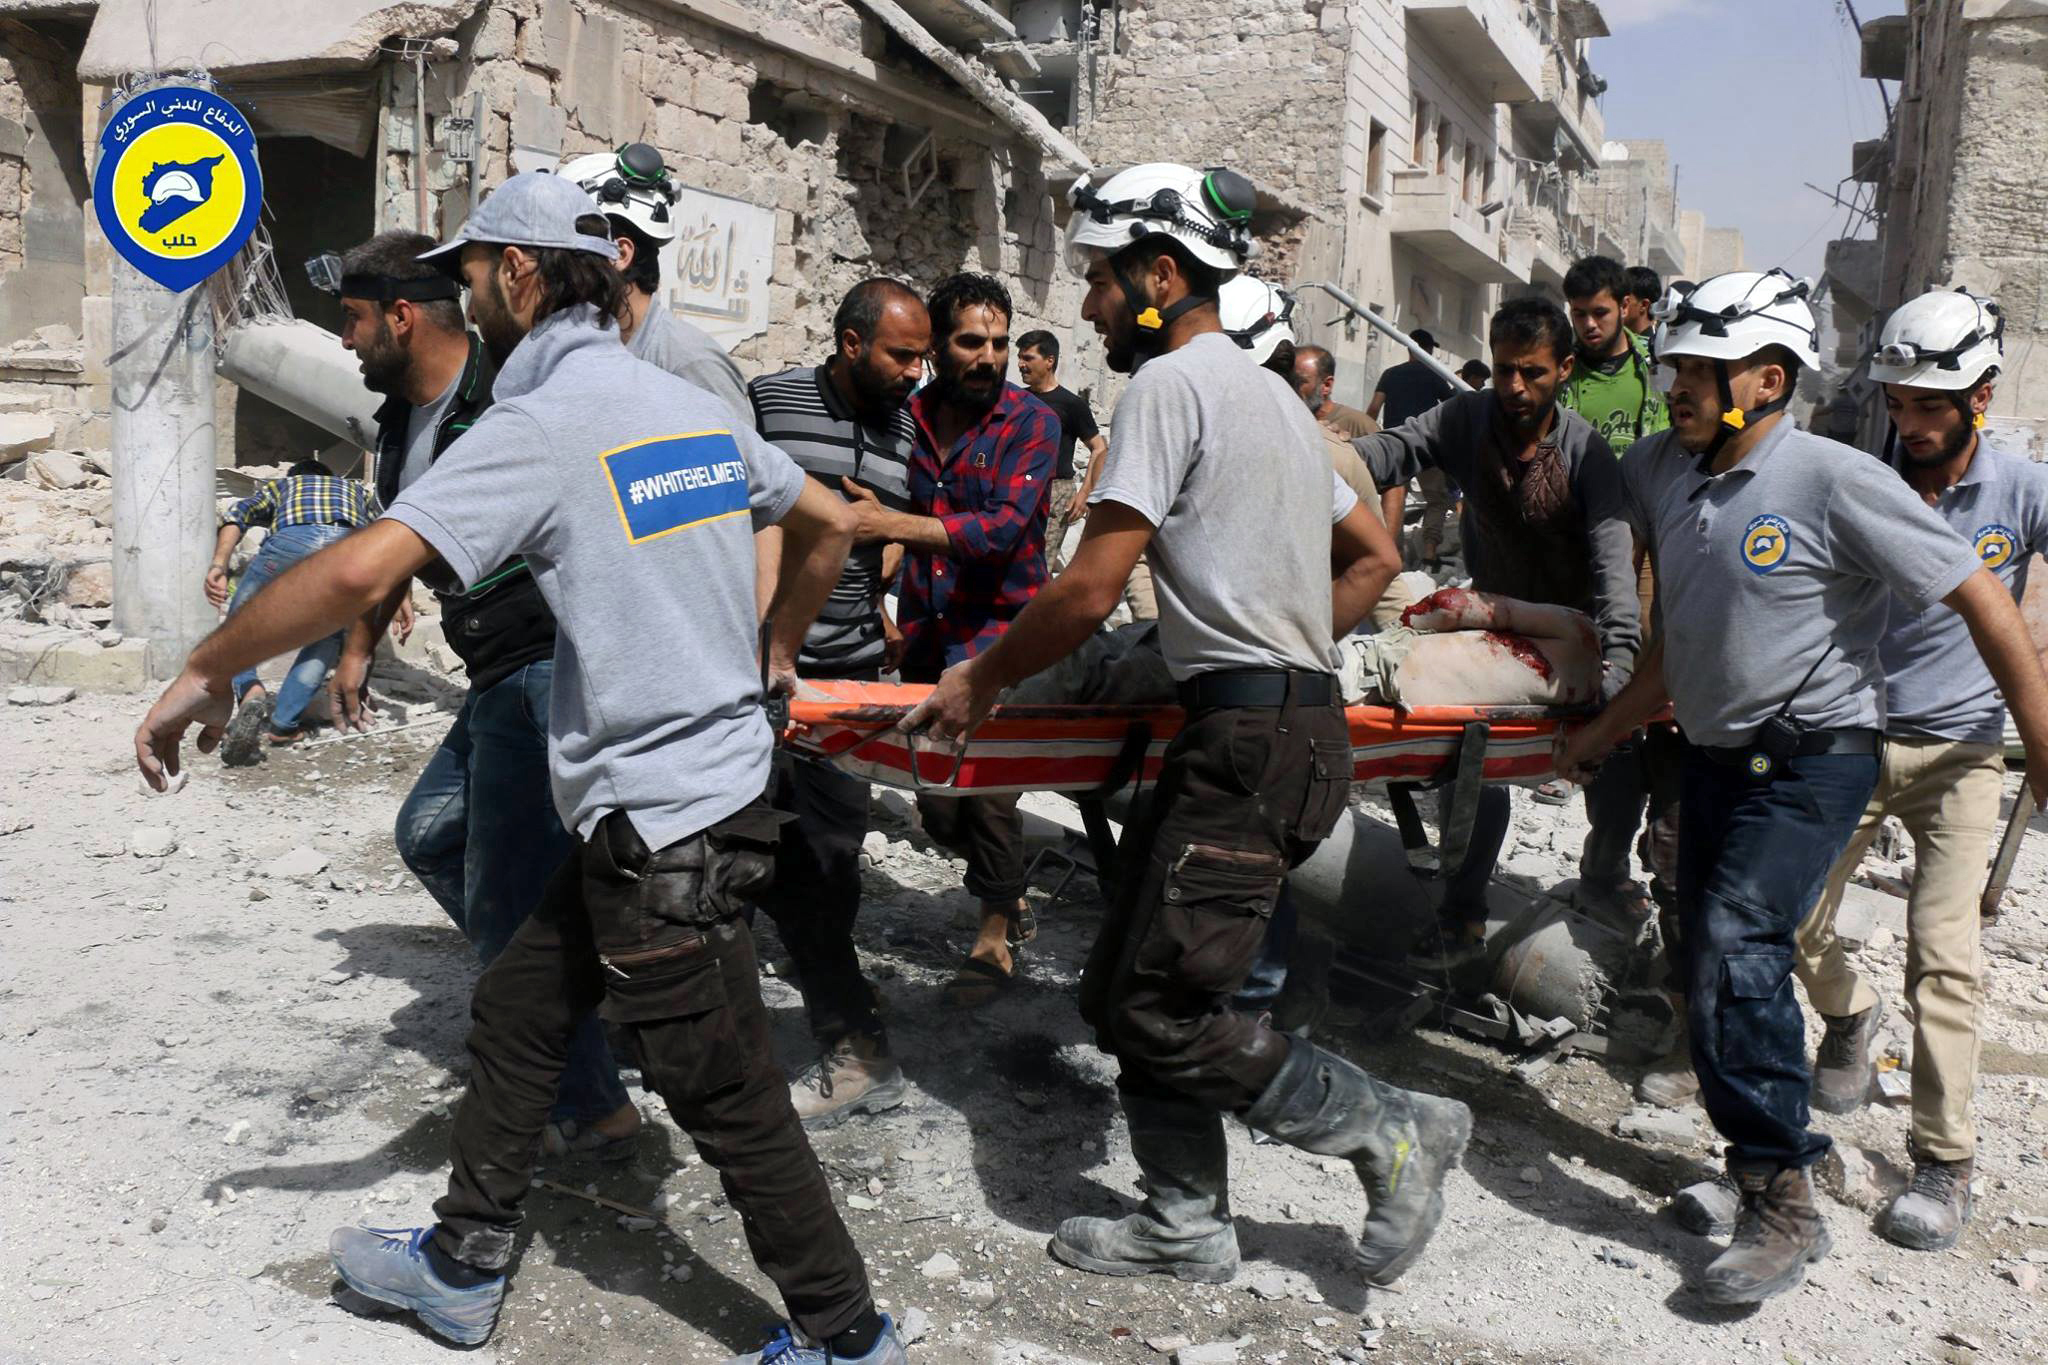 FILE - In this Wednesday, Sept. 21, 2016, file photo, provided by the Syrian Civil Defense White Helmets, rescue workers work the site of airstrikes in the al-Sakhour neighborhood of the rebel-held part of eastern Aleppo, Syria. Violence in Aleppo has surged in recent days as a U.S.-Russia-brokered cease-fire collapsed after one week. The Syrian government and its ally Russia have resumed intense airstrikes and Syrian military officials have spoken of a looming ground offensive against rebel-held districts. (Syrian Civil Defense White Helmets via AP)